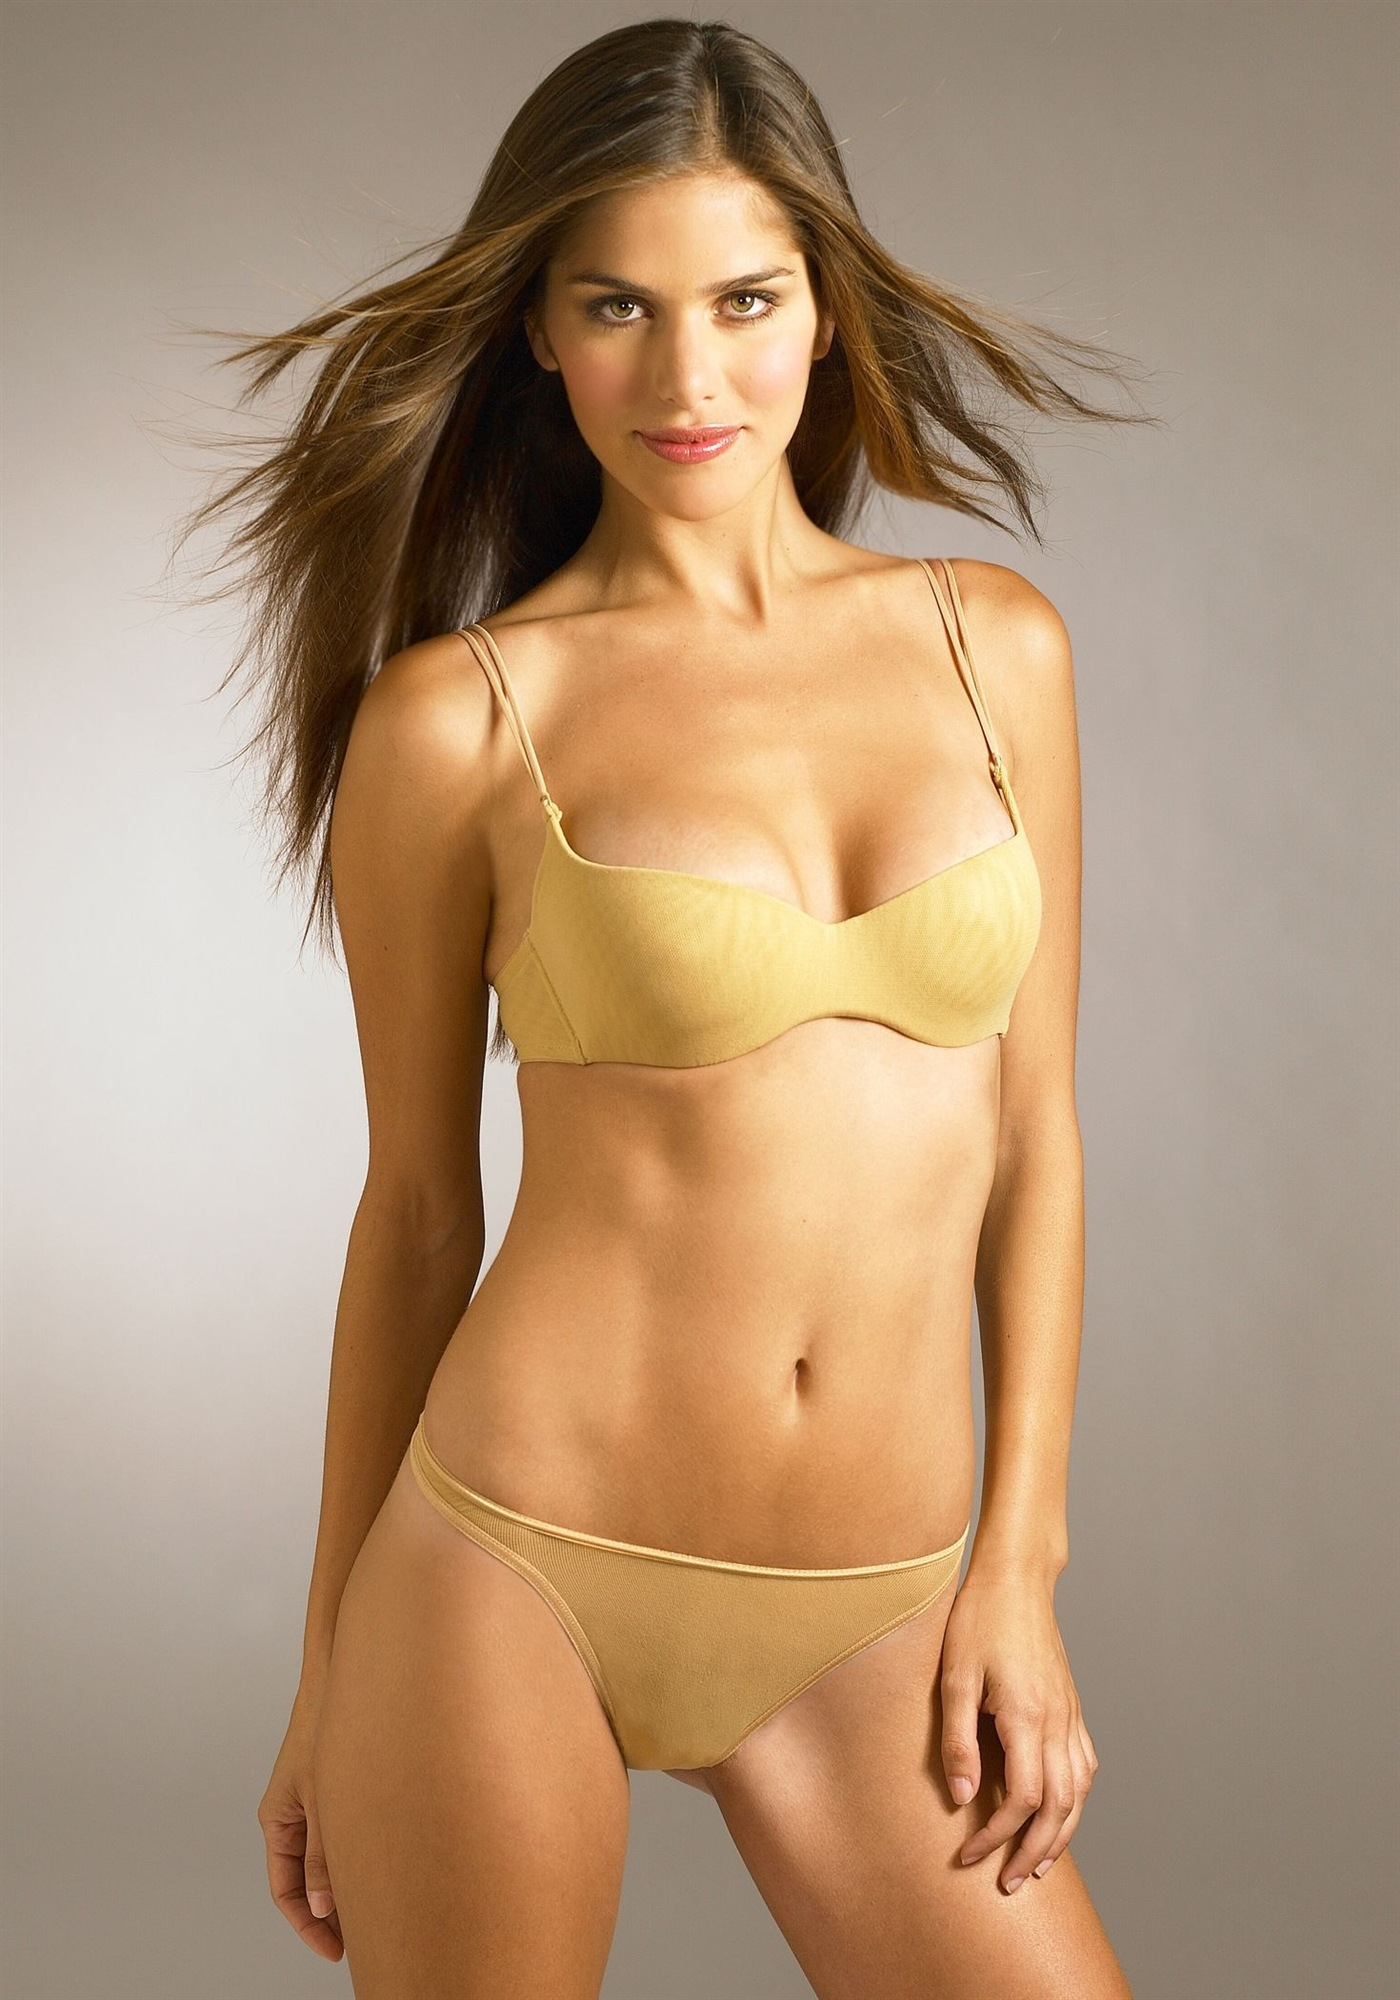 Was mistake Anahi gonzales hot